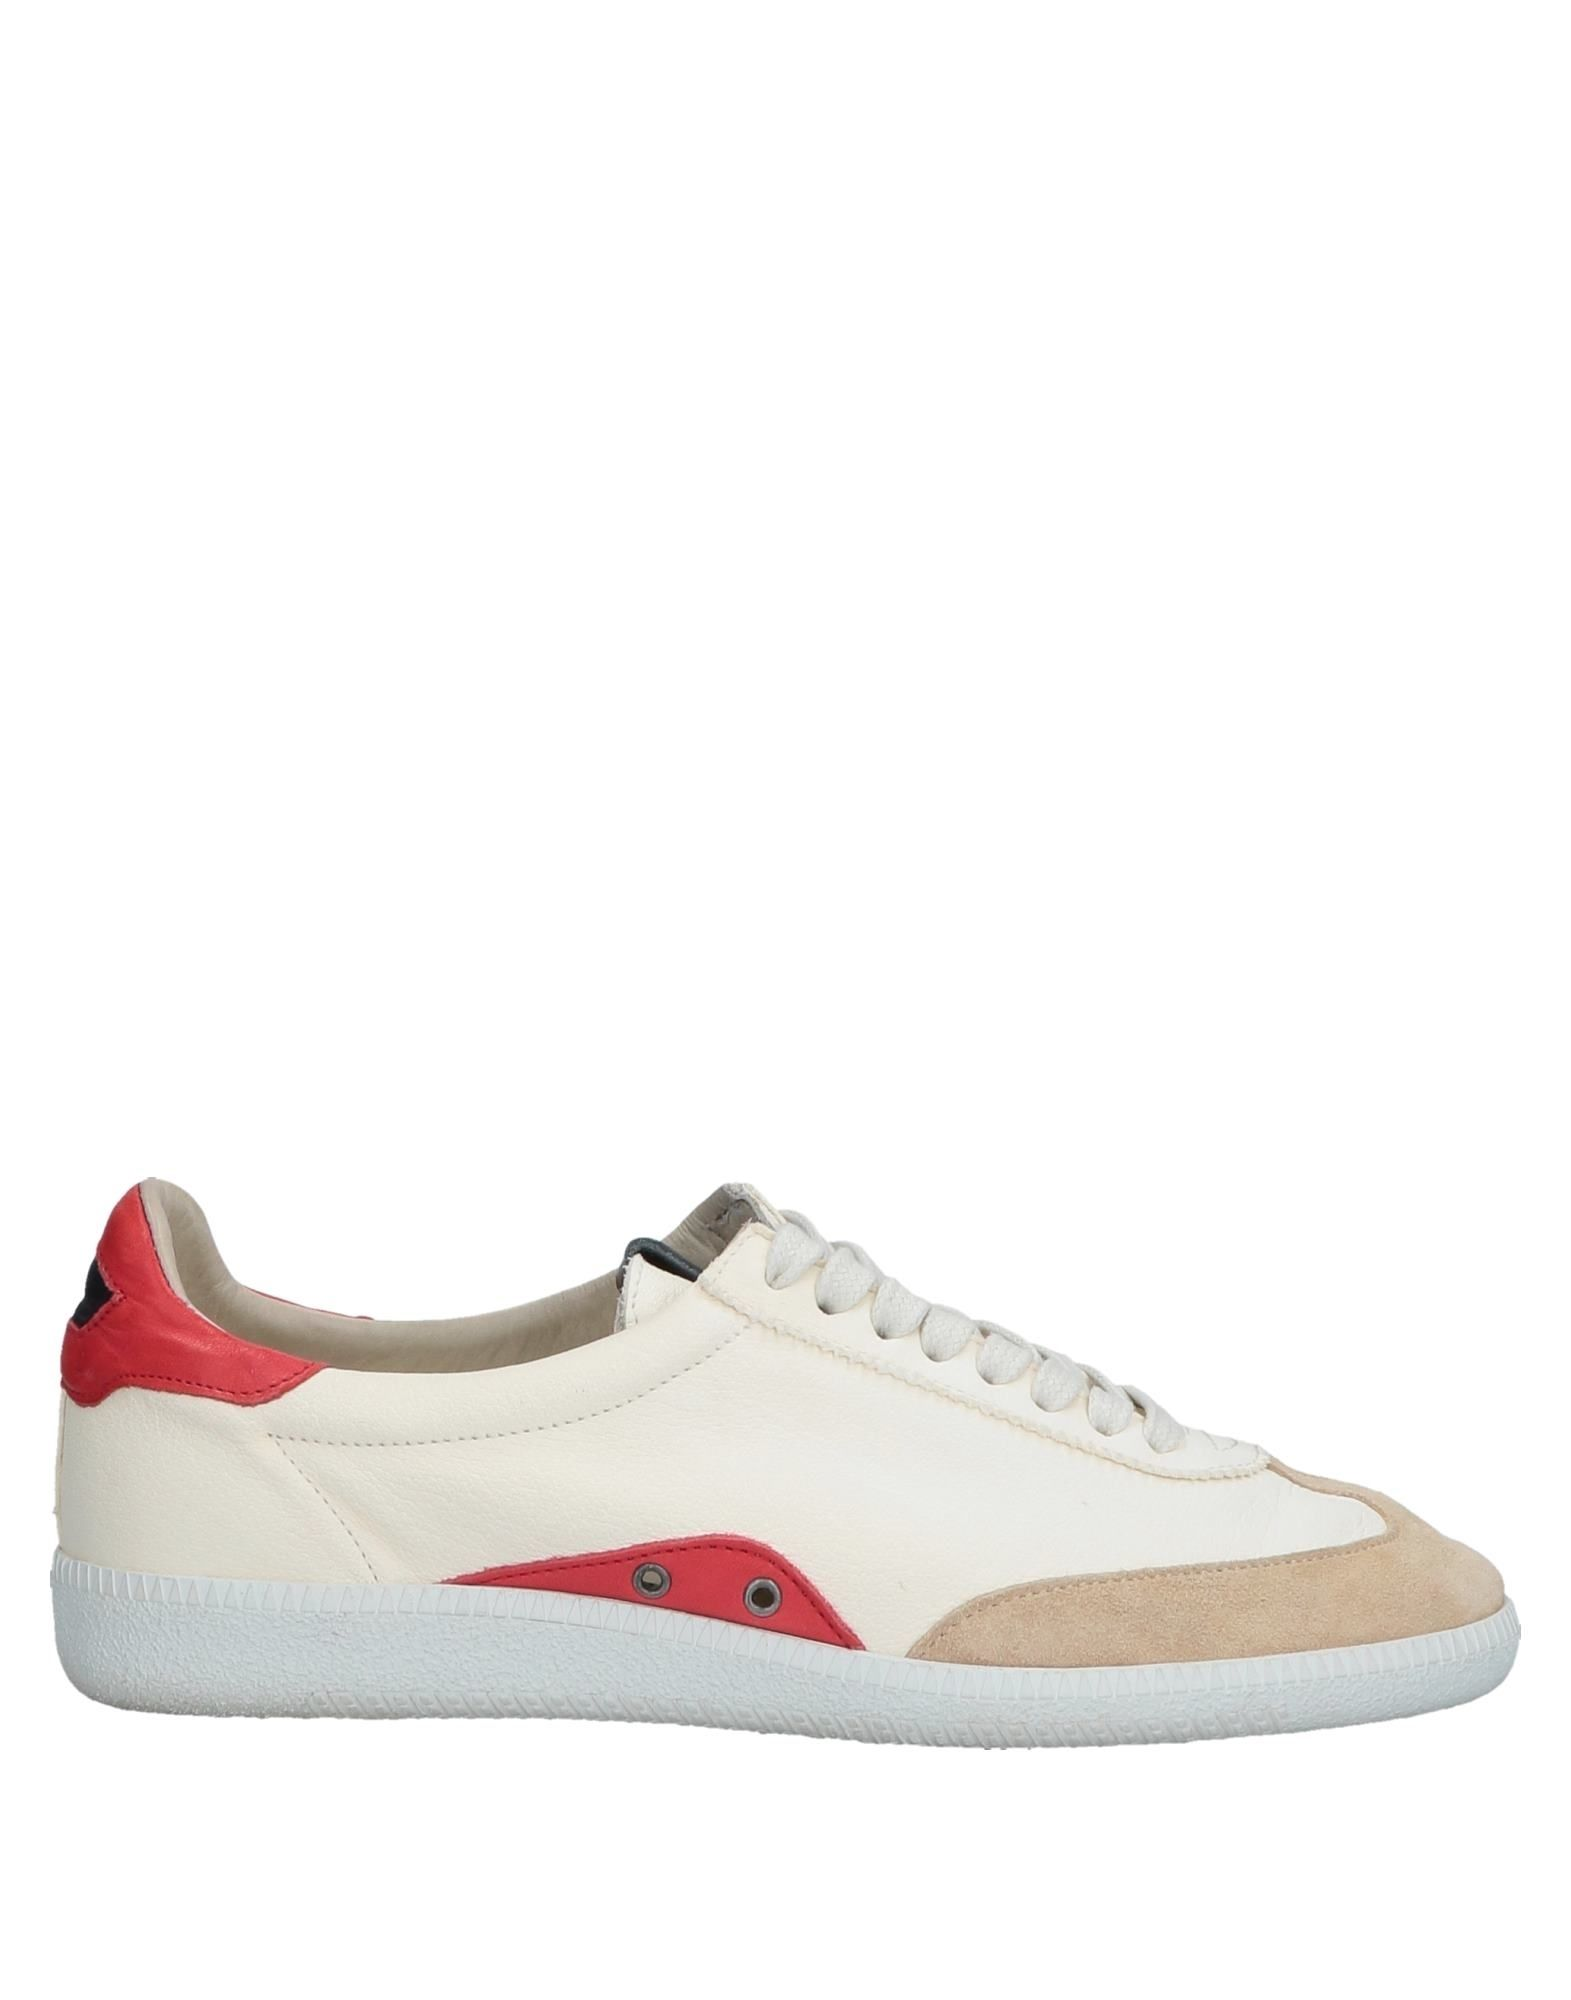 Zapatillas N.D.C. Made By Hand Hombre Hand - Zapatillas N.D.C. Made By Hand Hombre  Marfil 82c5e3